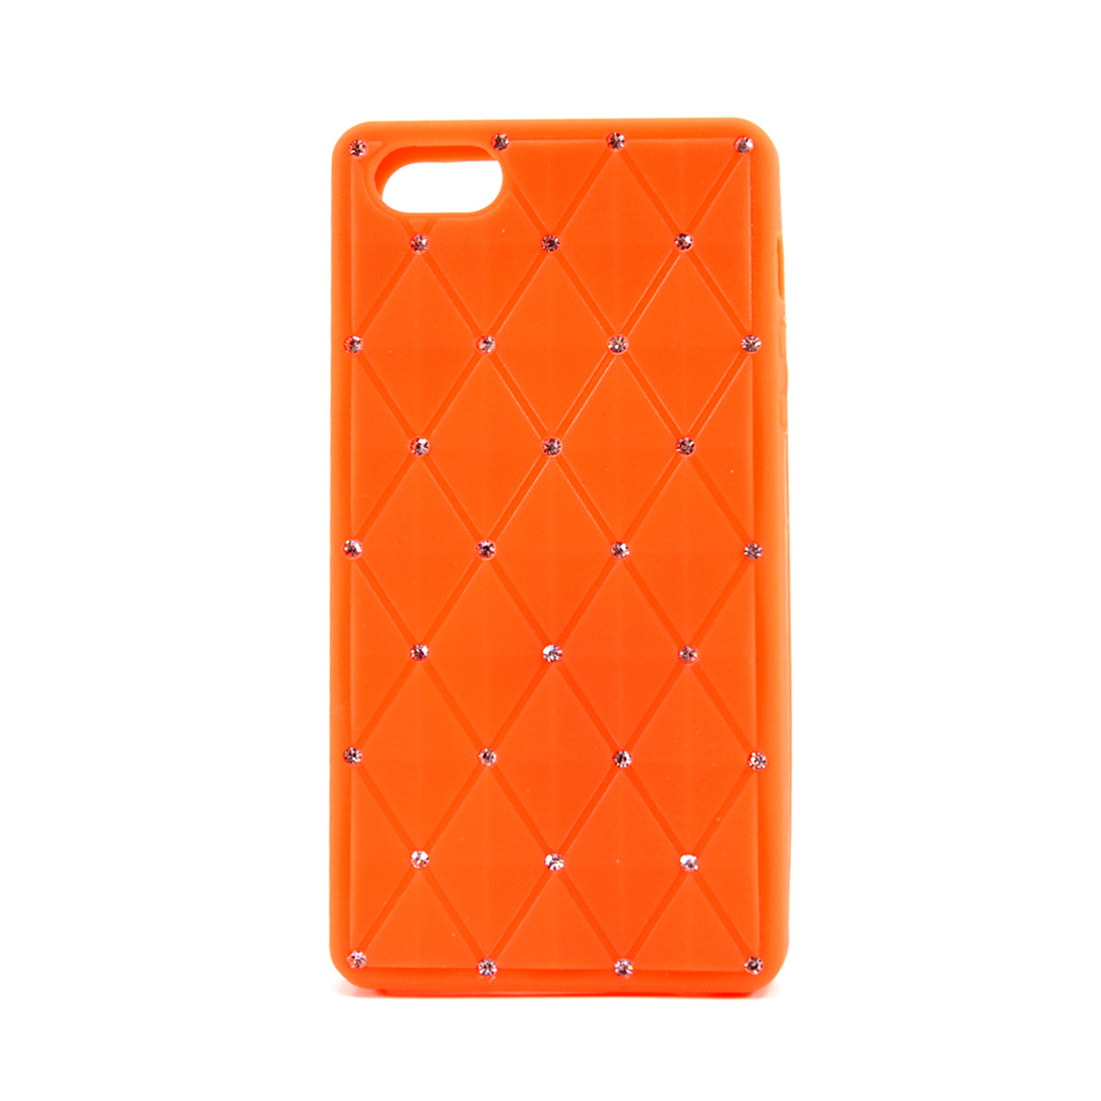 Dasein® Flexible Rhinestone Accent Case for iPhone 4